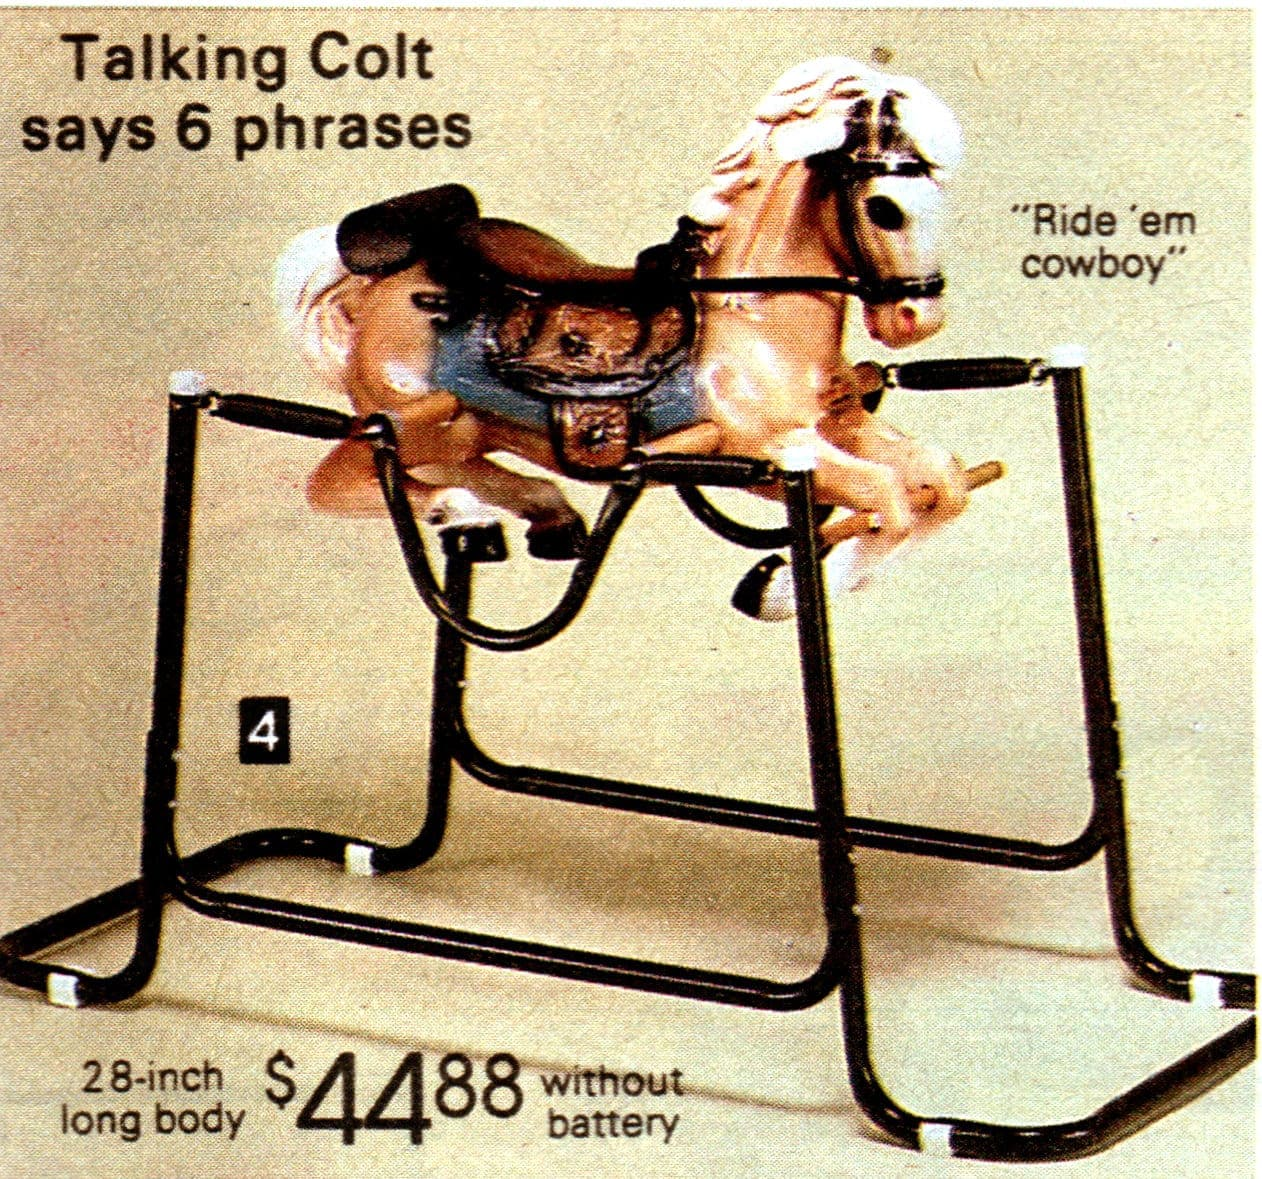 Talking colt - vintage ride-on spring horse toys from the 1980s